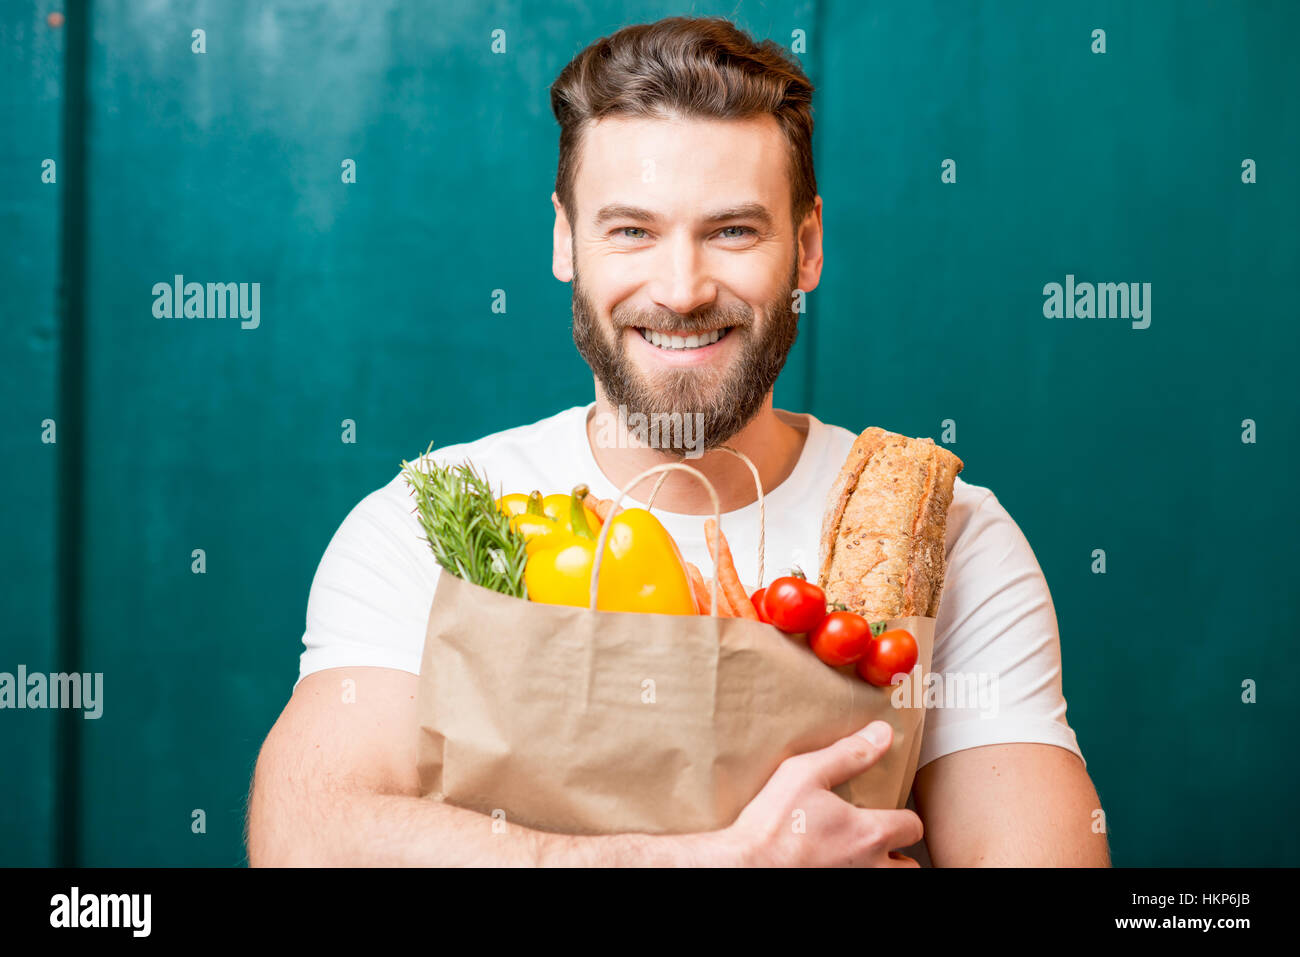 Man with bag full of food - Stock Image